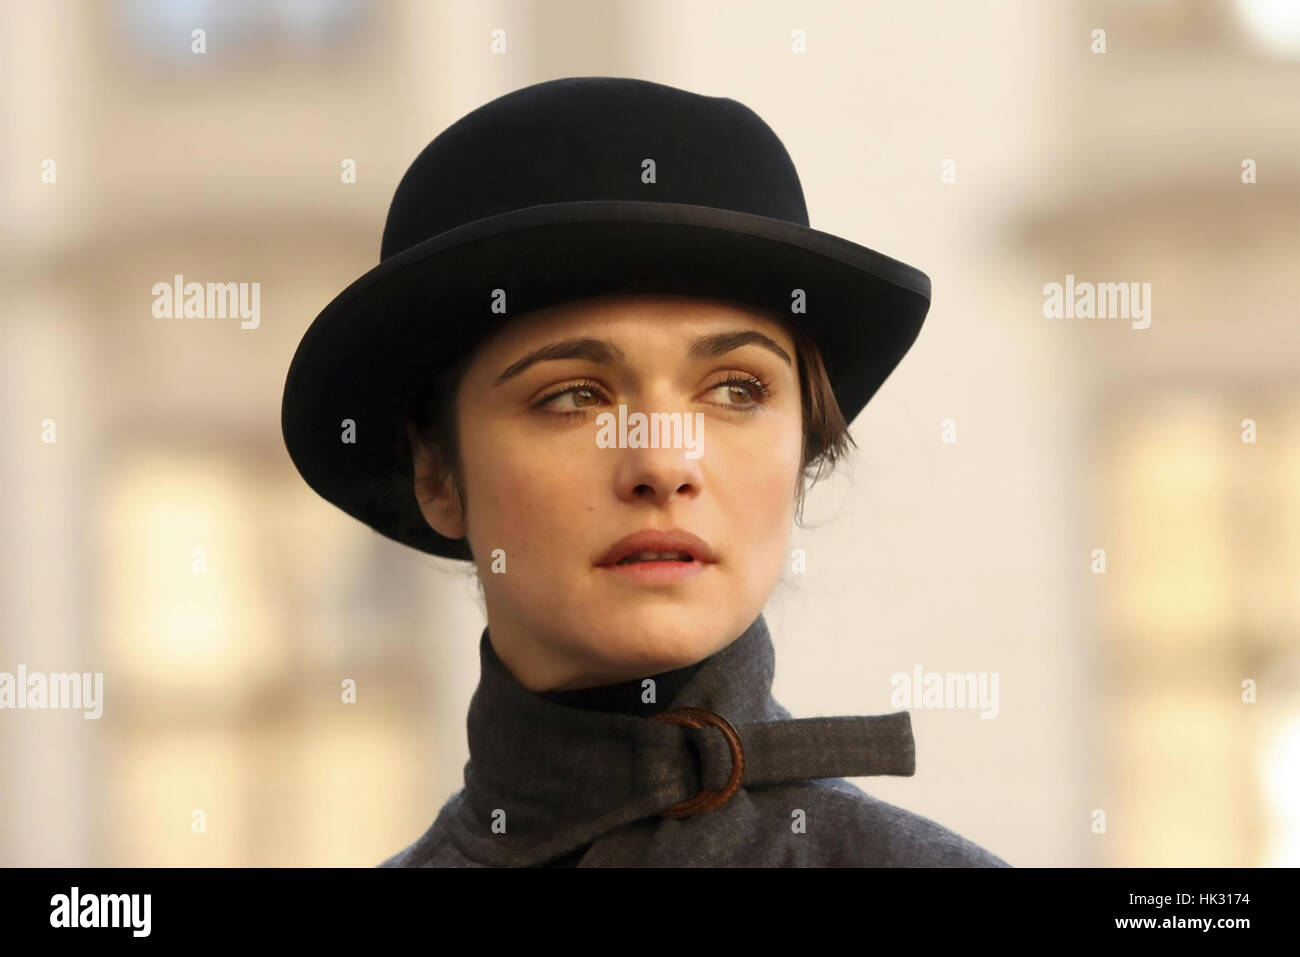 THE BROTHERS BLOOM 2008 Summit Entertainment film with Rachel Weisz - Stock Image